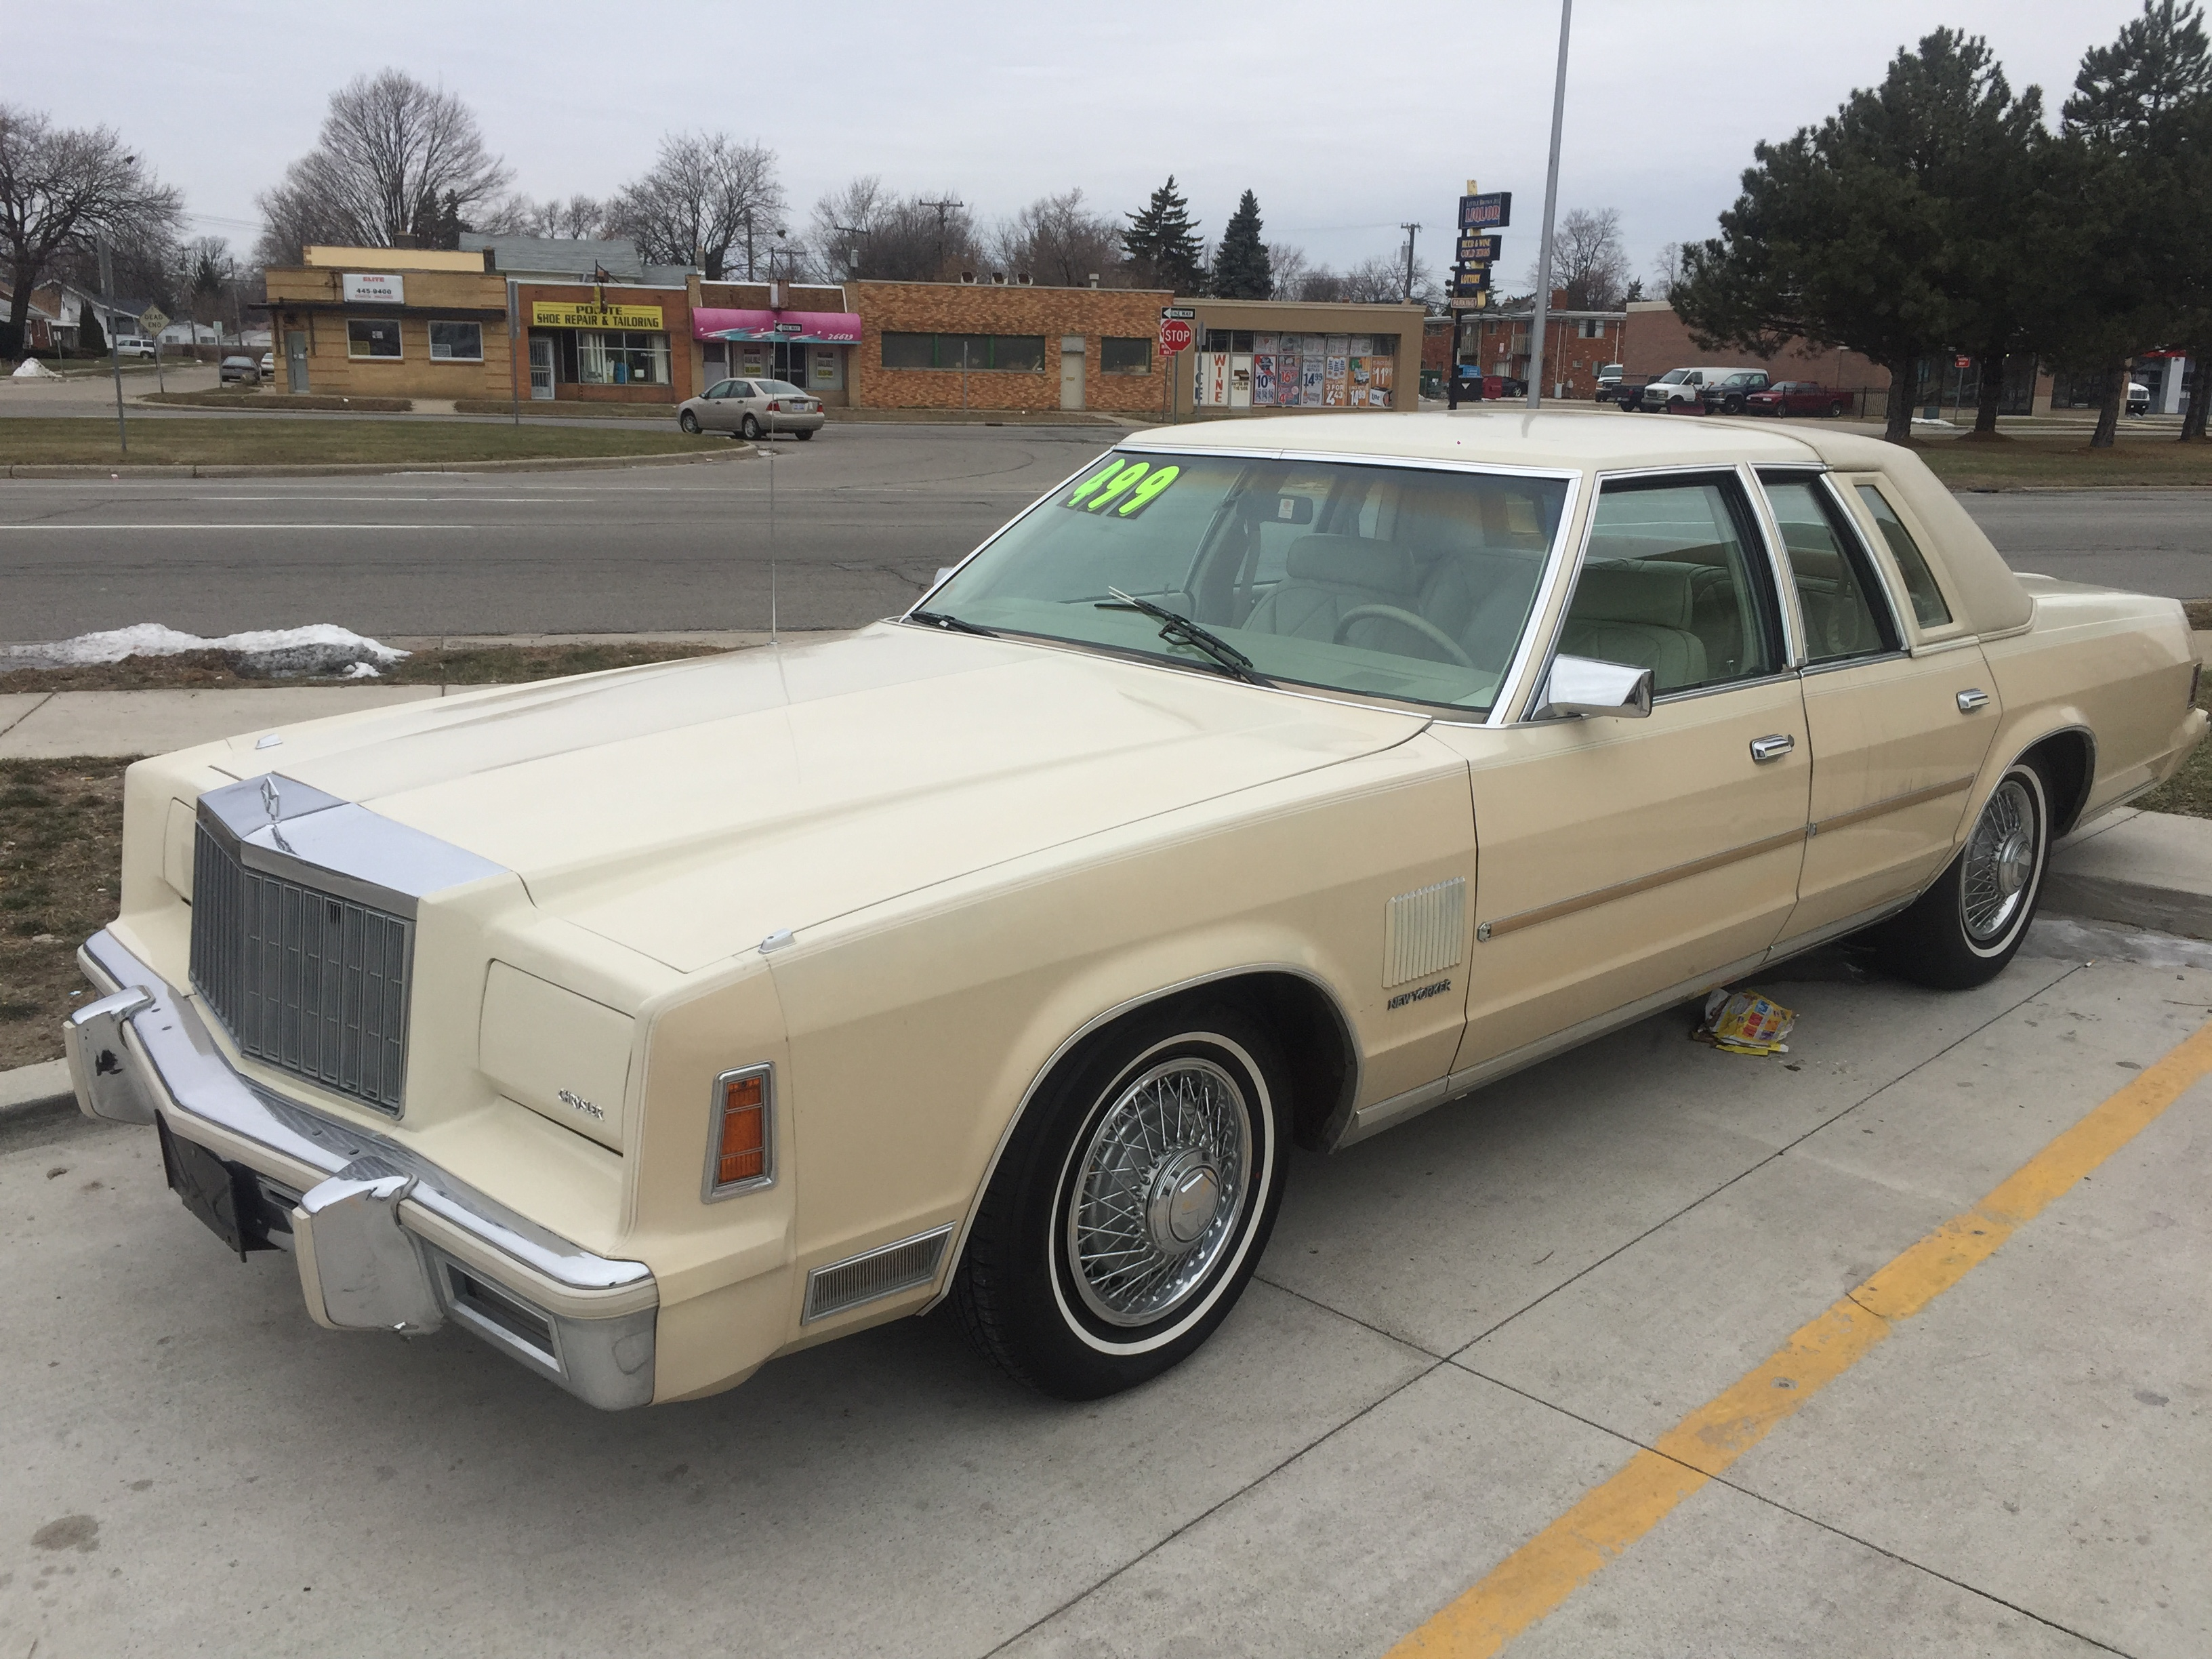 Curbside Classic 1979 New Yorker Chryslers Deadly Sin 3 The 1978 Cadillac Deville Rockauto At A 79 Fifth Avenue Its Great To Hear Some Positive Remarks In Much Maligned Car Id Love More About Your